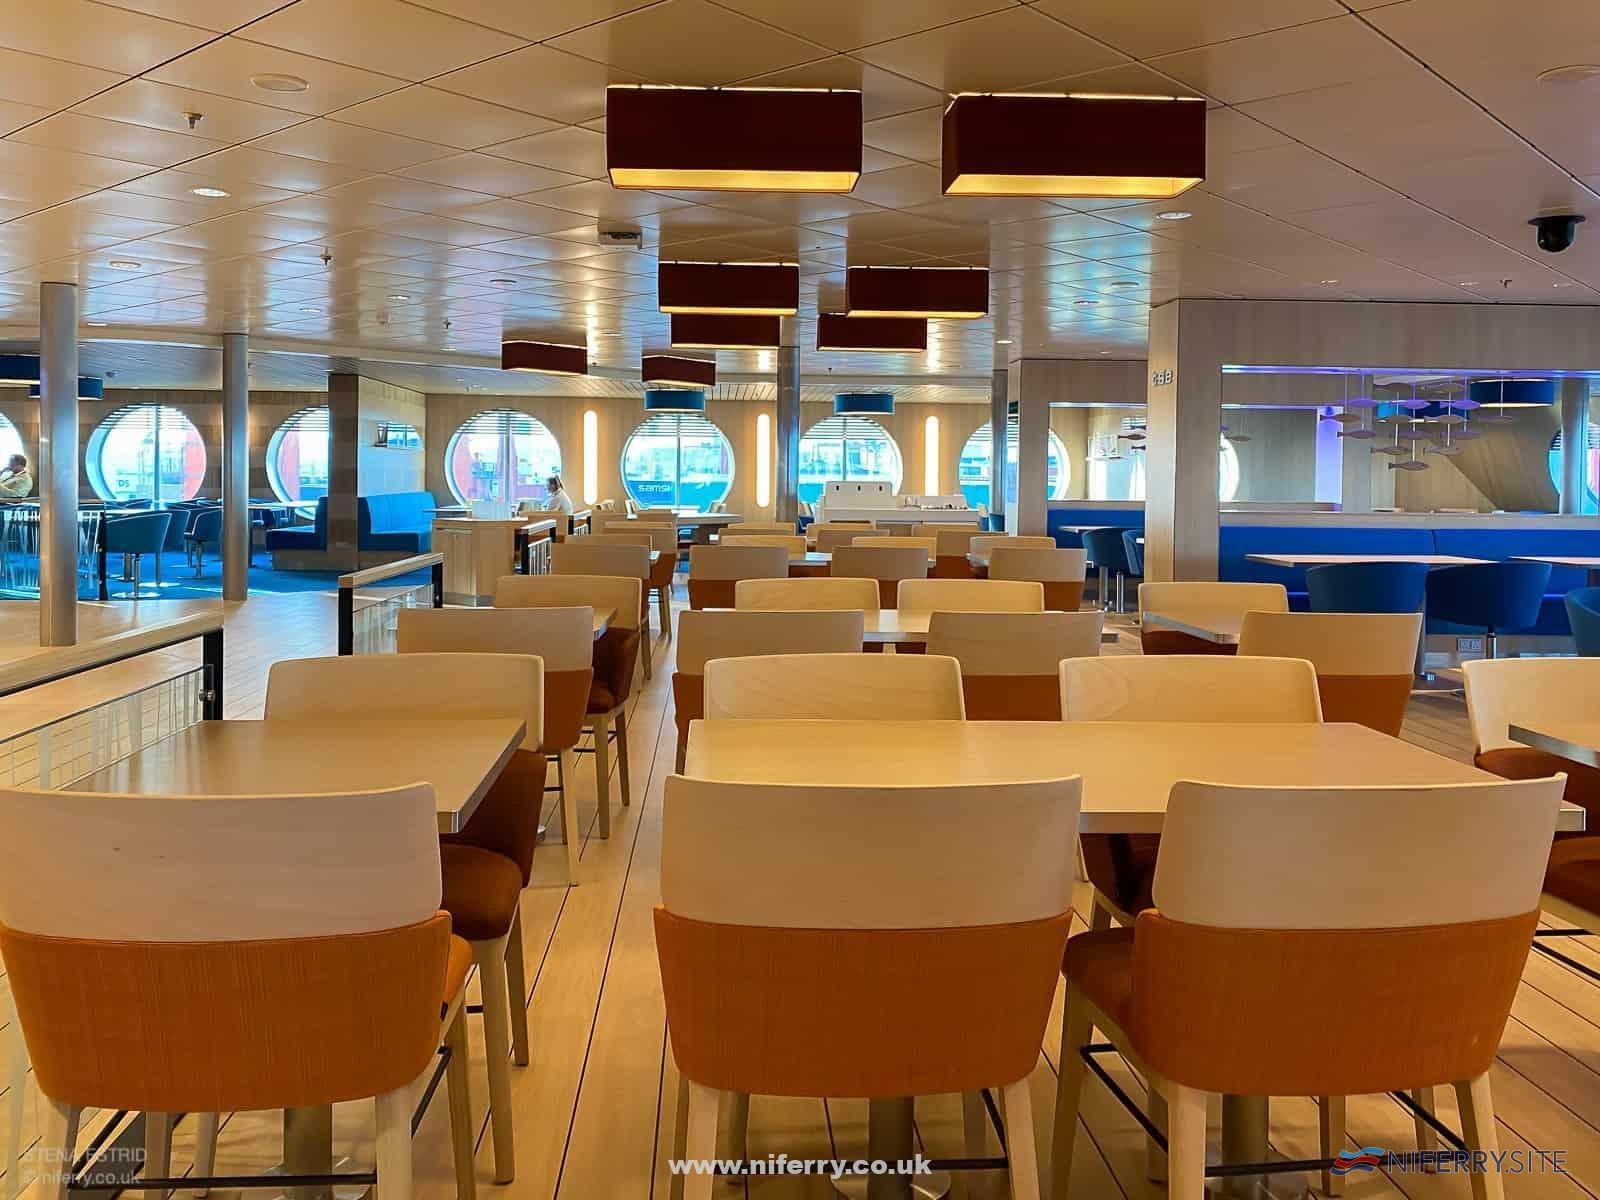 'Taste' restaurant seating. © NIferry.co.uk.